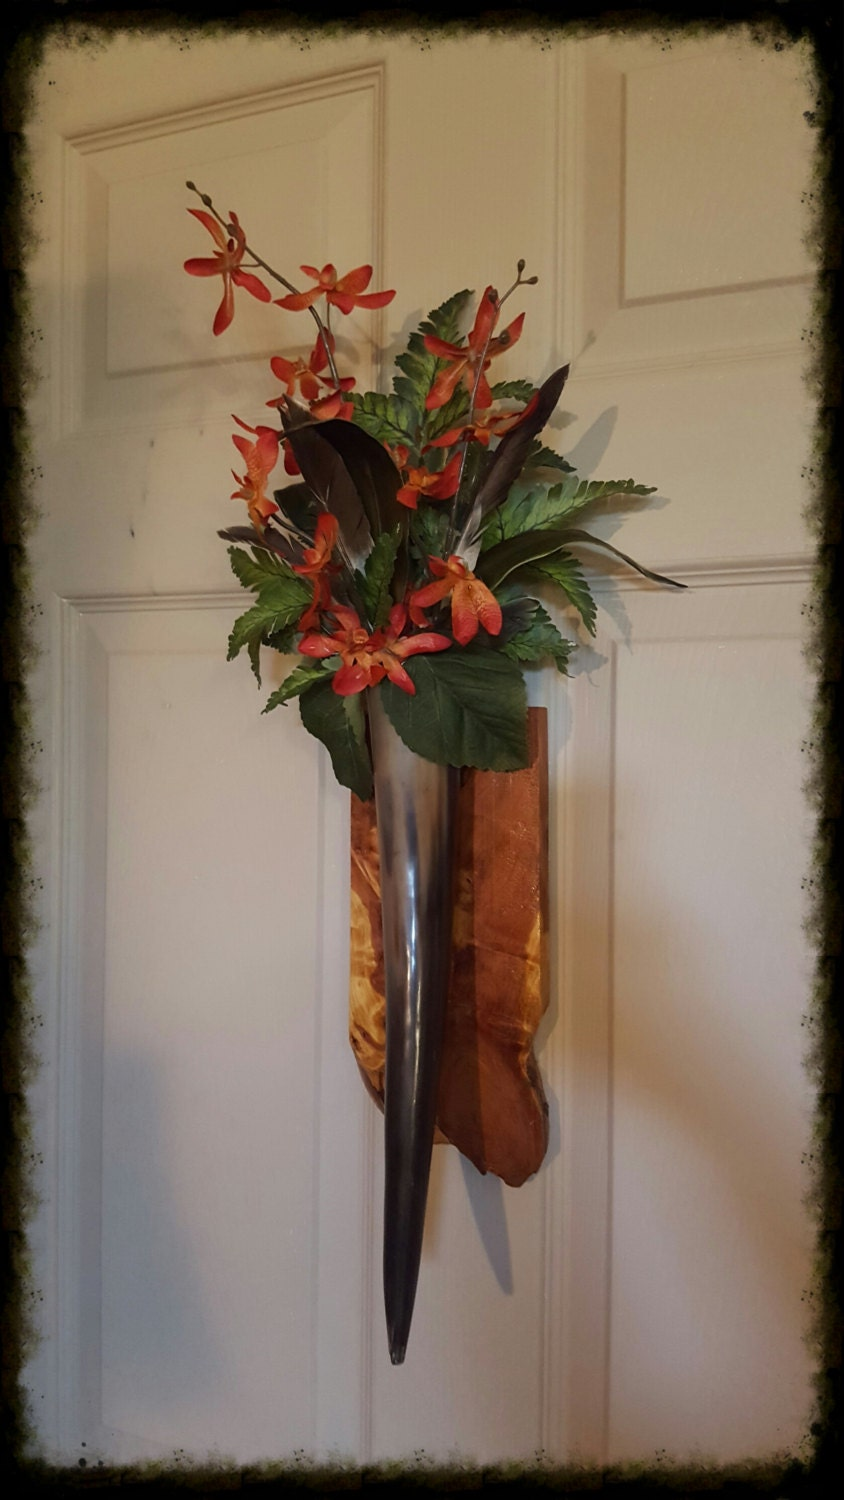 Cow Horn Floral Arrangement Wall Sconce on by TailsEndFlorals on Wall Sconce Floral Arrangements Arrangement id=38568